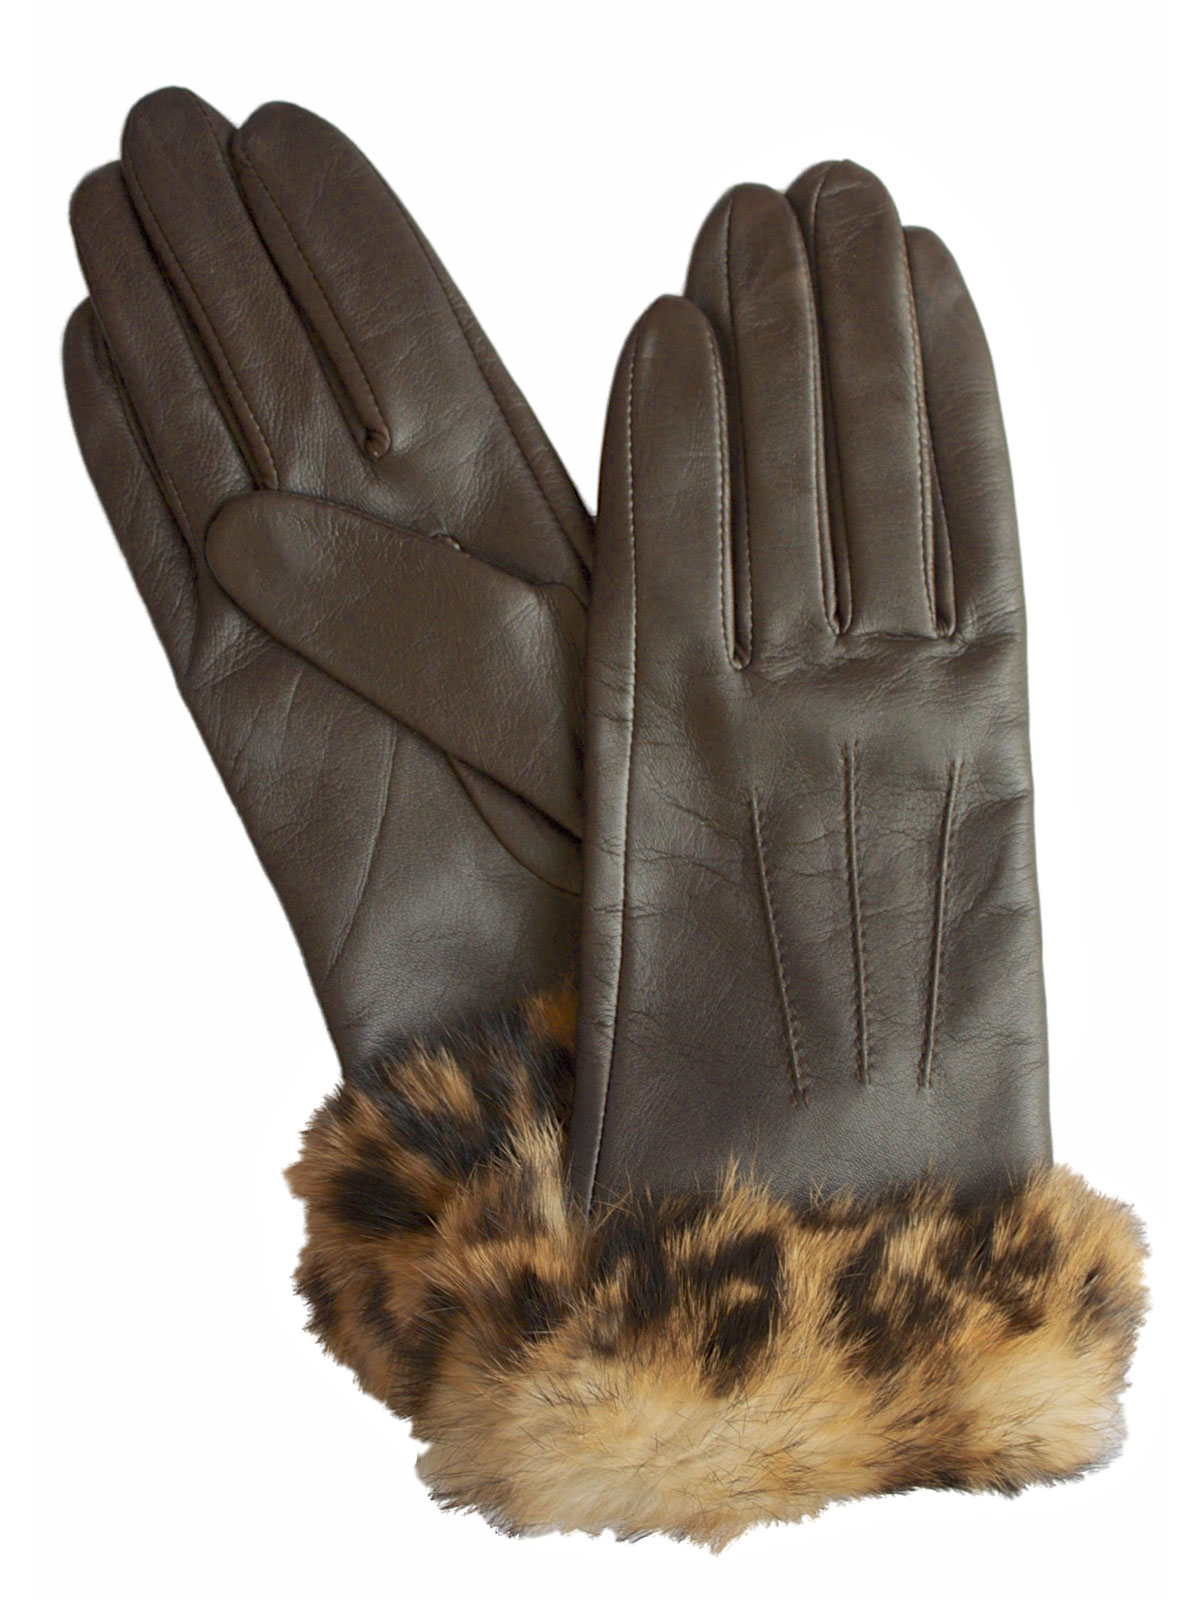 Blue leather gloves ladies uk - Dents Ladies Brown Leather Gloves With Fur Cuff